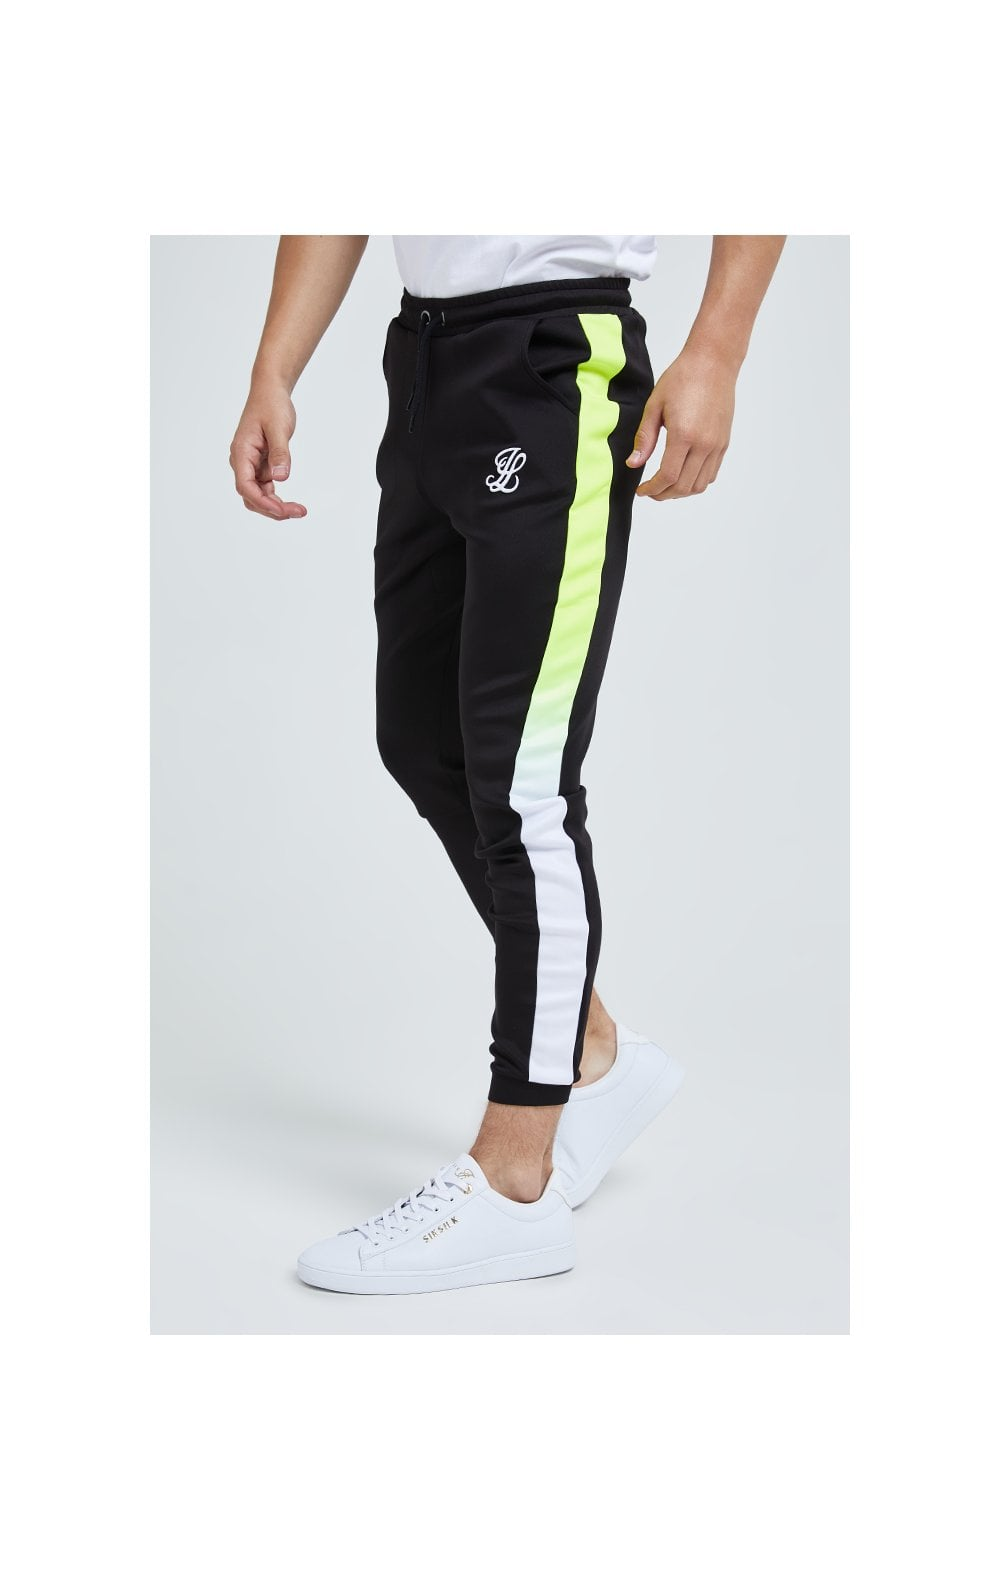 Illusive London Fade Panel Jogger - Black, White & Neon Yellow